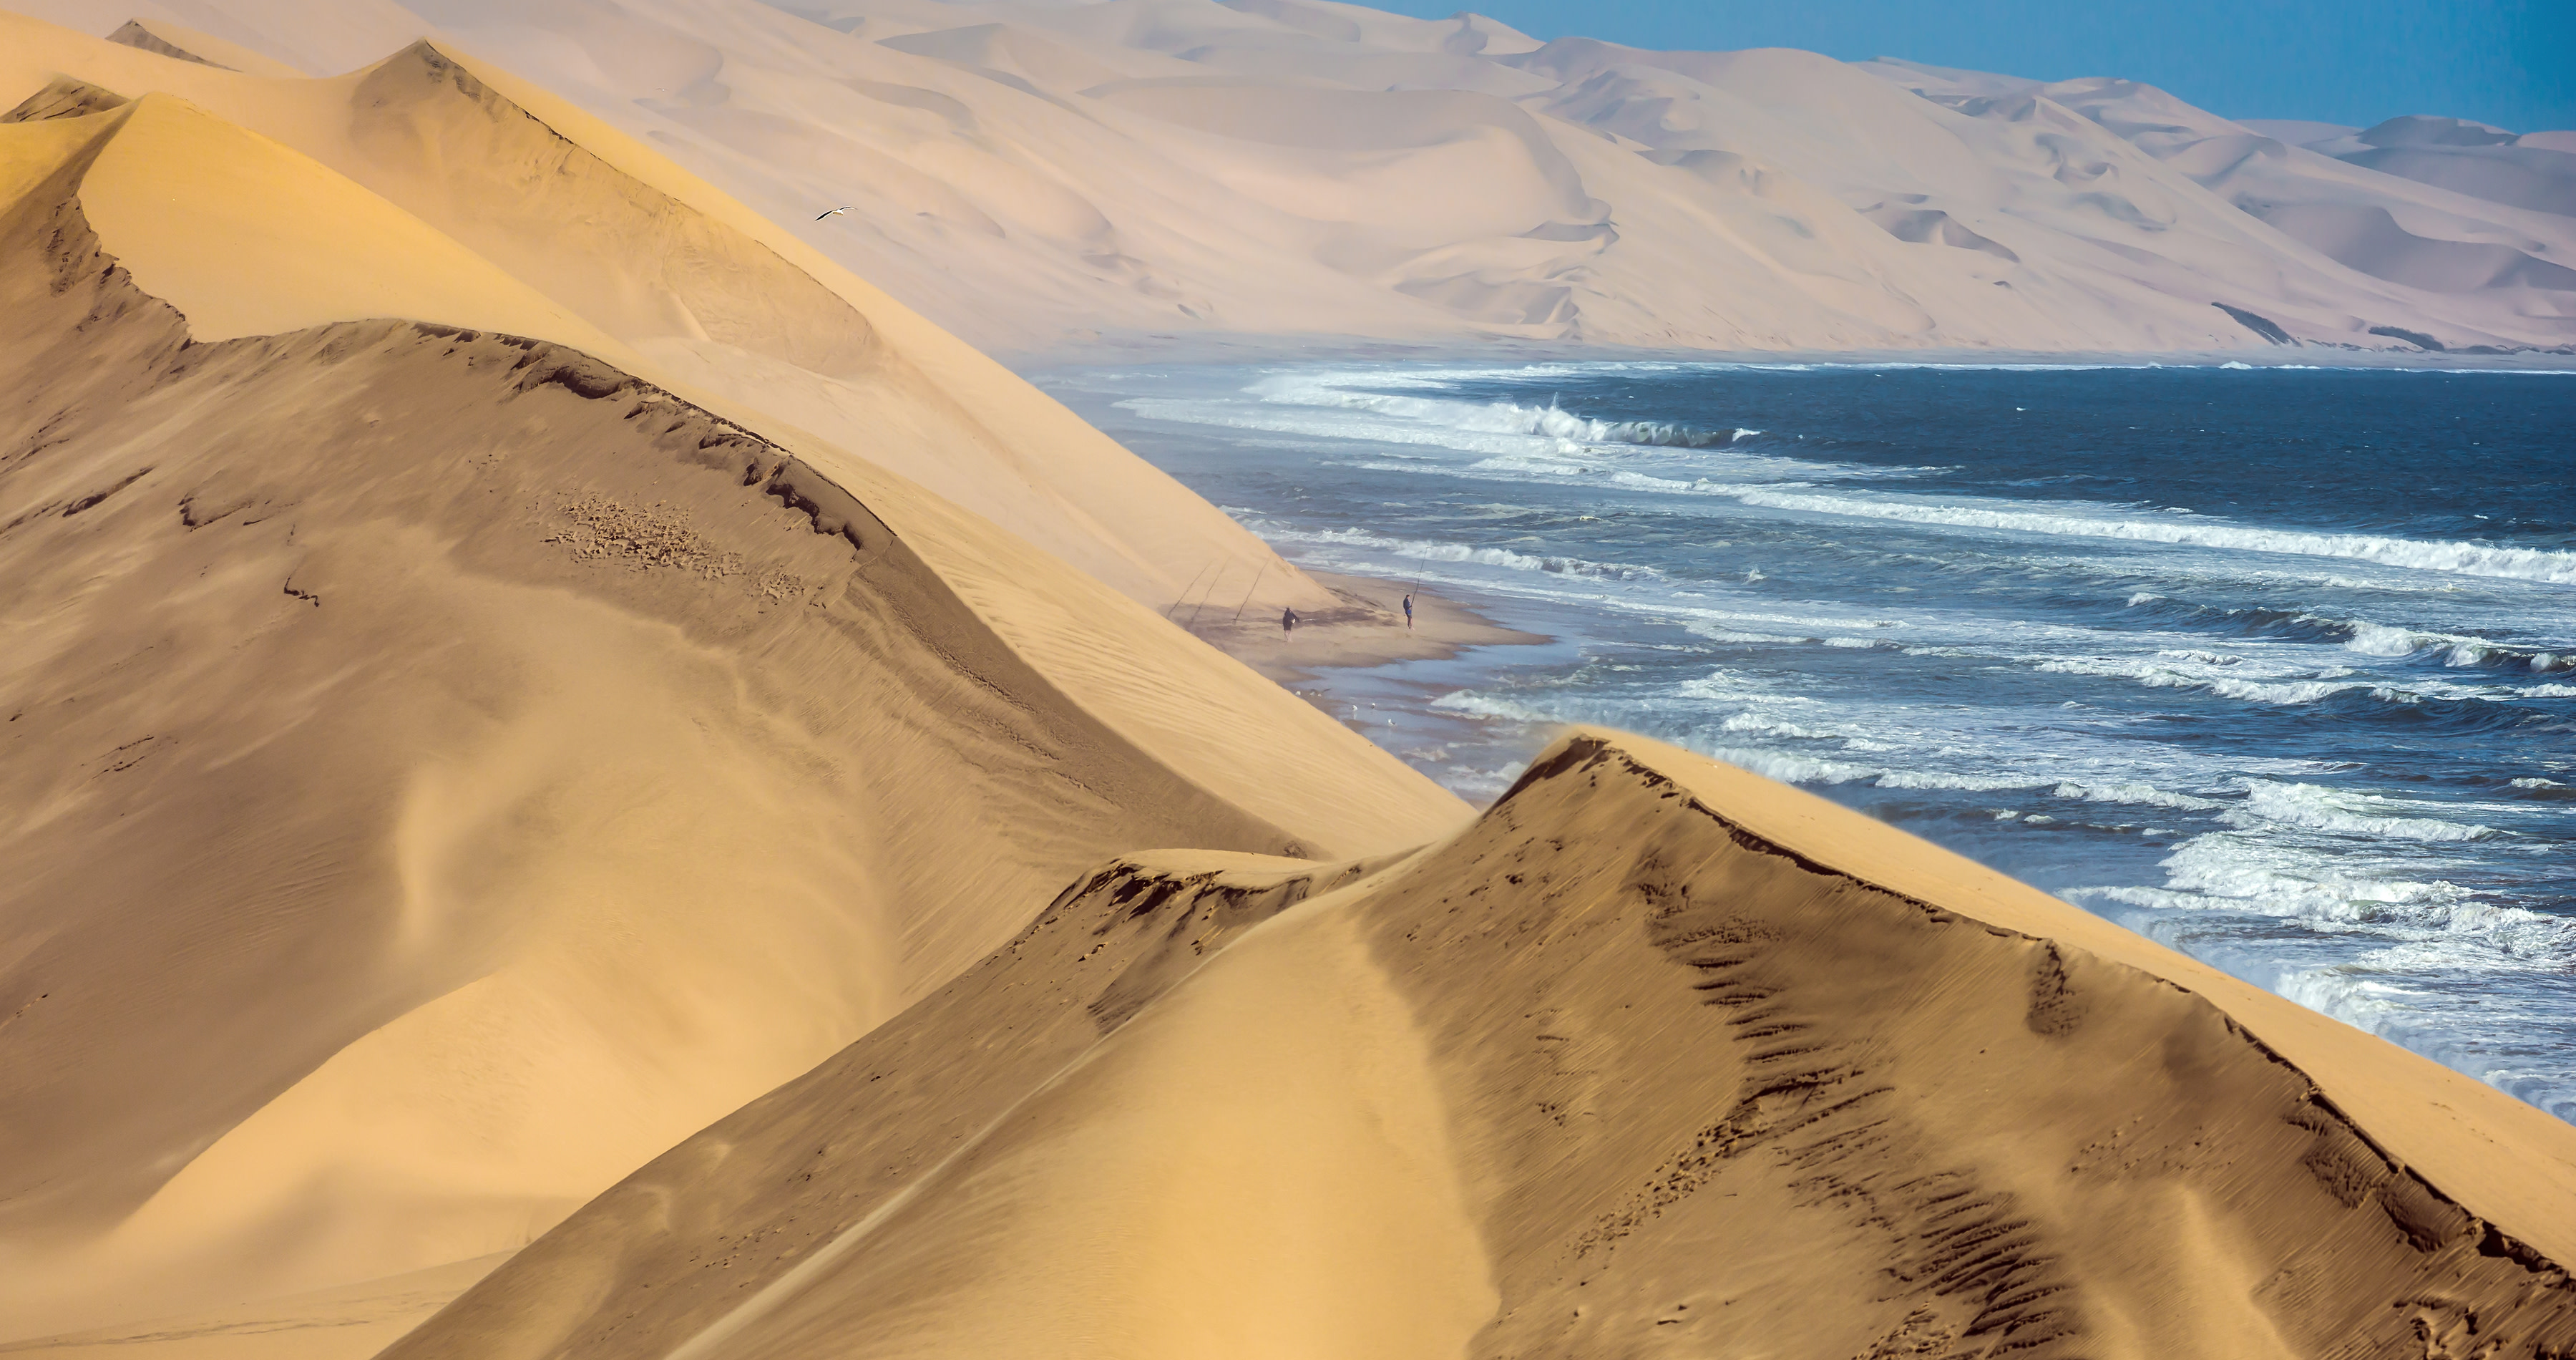 Atlantic coast of Walvis Bay, Namibia. Ocean surf with foamy waves - Namibia travel guide